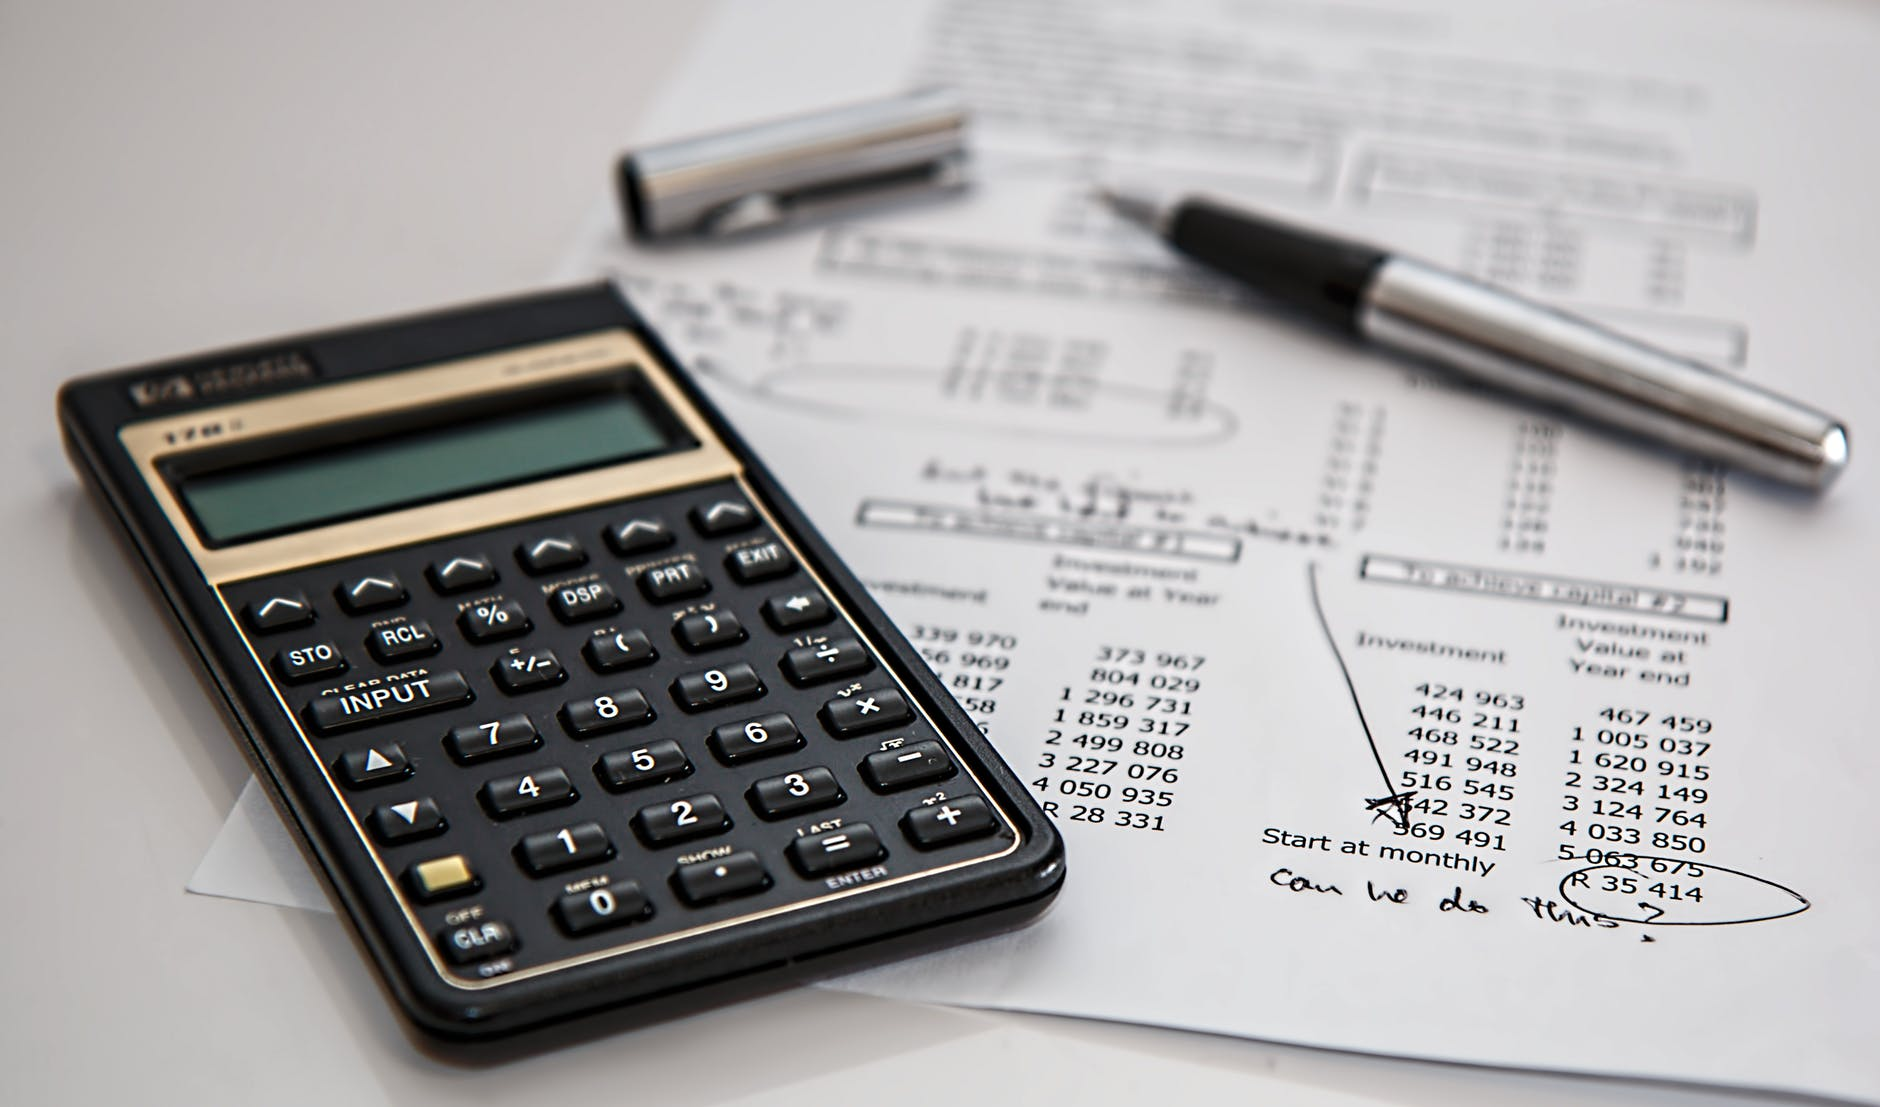 Being able to do quick and accurate calculations is an essential part of business